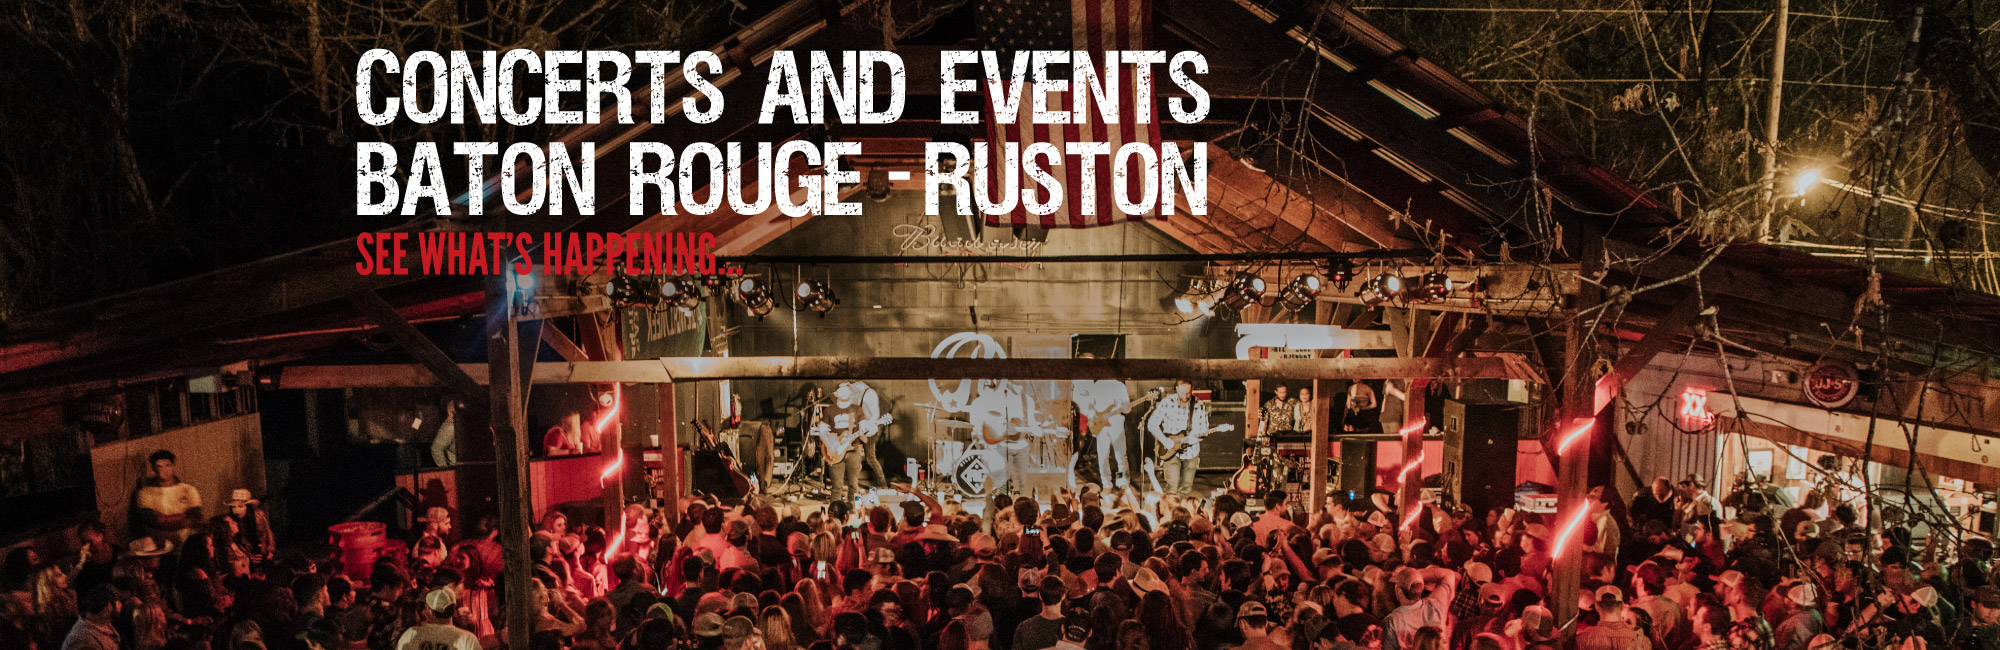 Baton Rouge & Ruston Concerts & Events Image